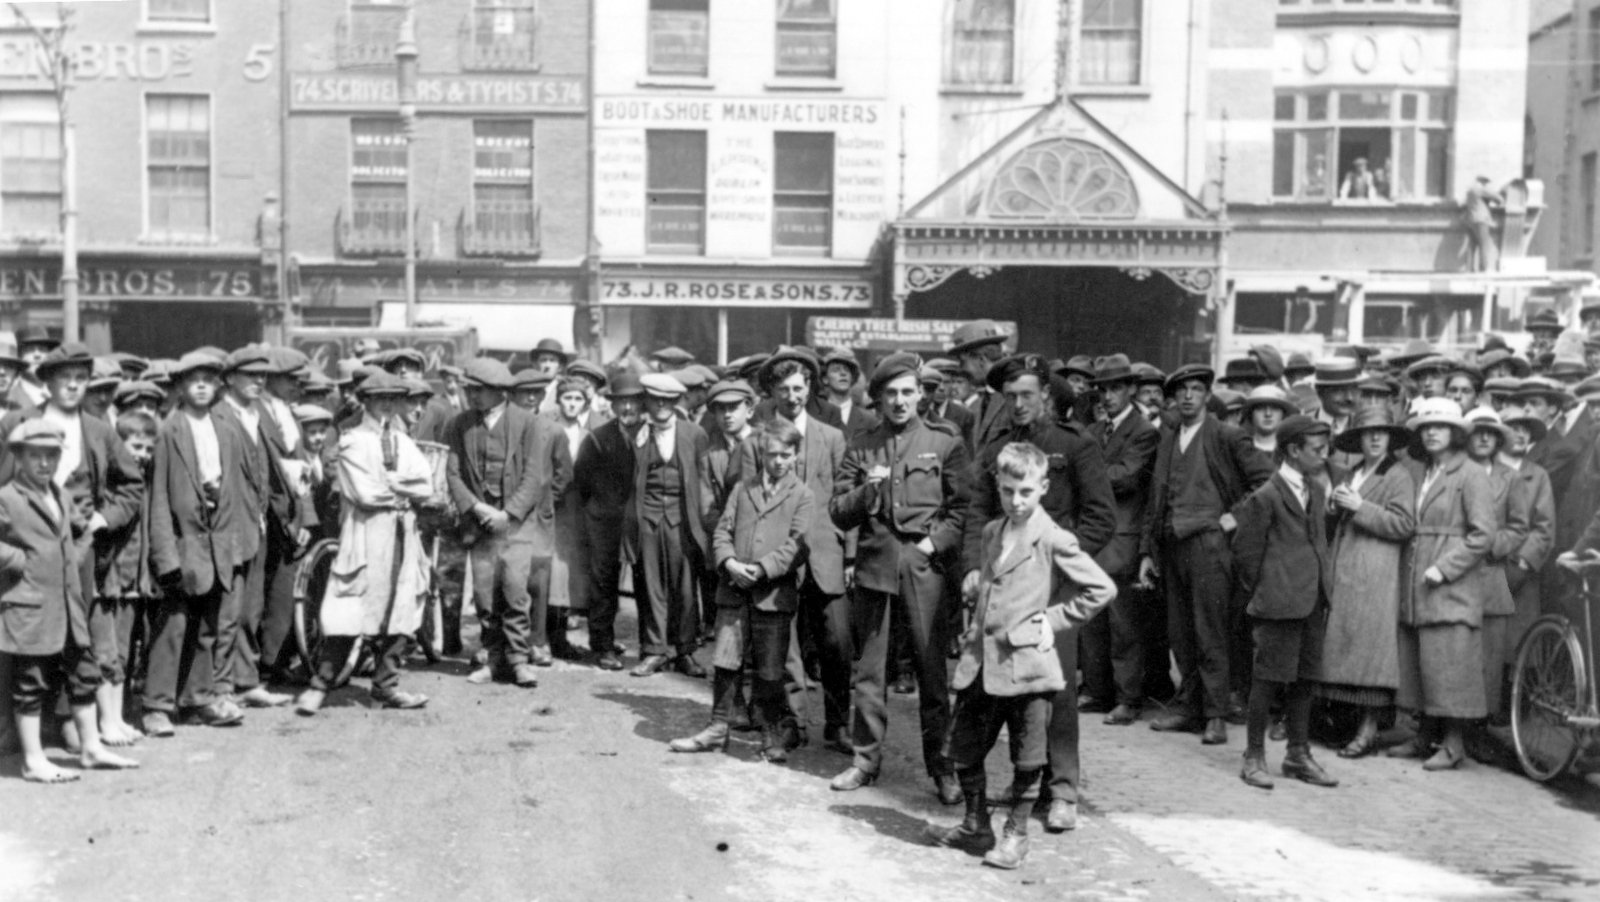 Image - While deaths continued around the country, Dublin crowds gathered outside Dublin Castle to celebrate the signing of the Truce. Photo: Mercier Archives